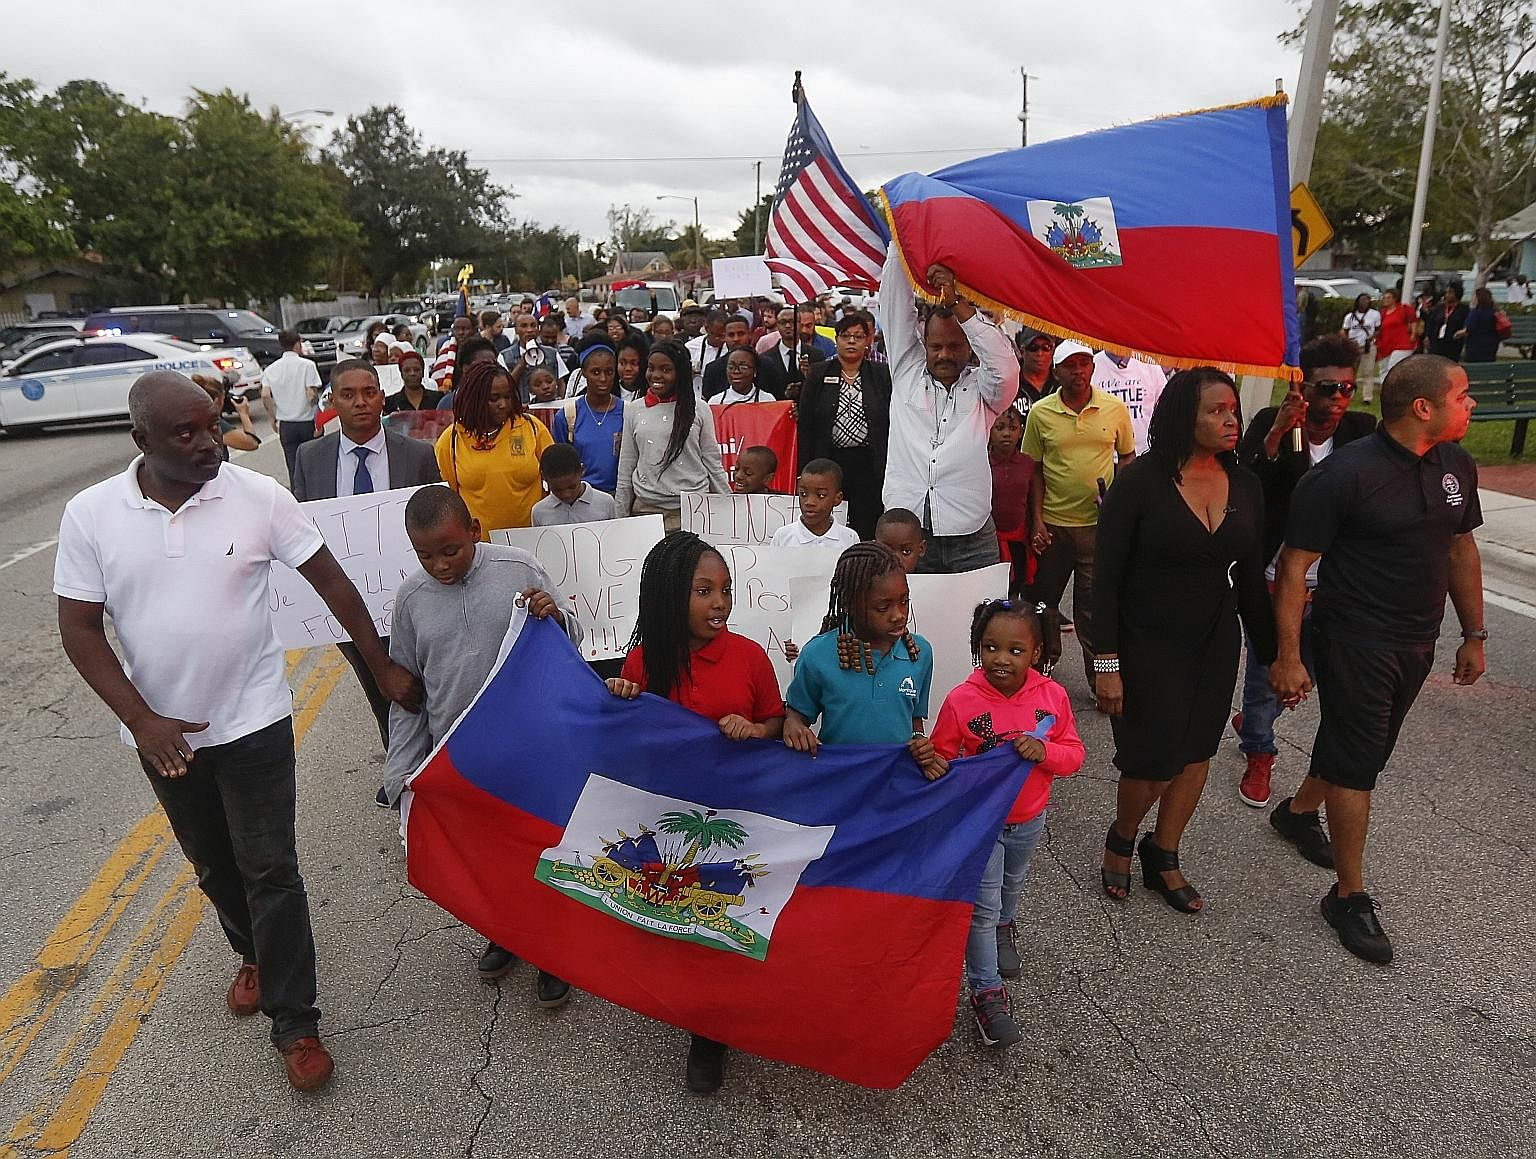 Marchers in the Little Haiti neighbourhood of Miami marking the eighth anniversary of the Haitian earthquake last Friday - and protesting against US President Donald Trump's remarks about Haiti. Mr Trump's vulgar comments last Thursday at an Oval Off